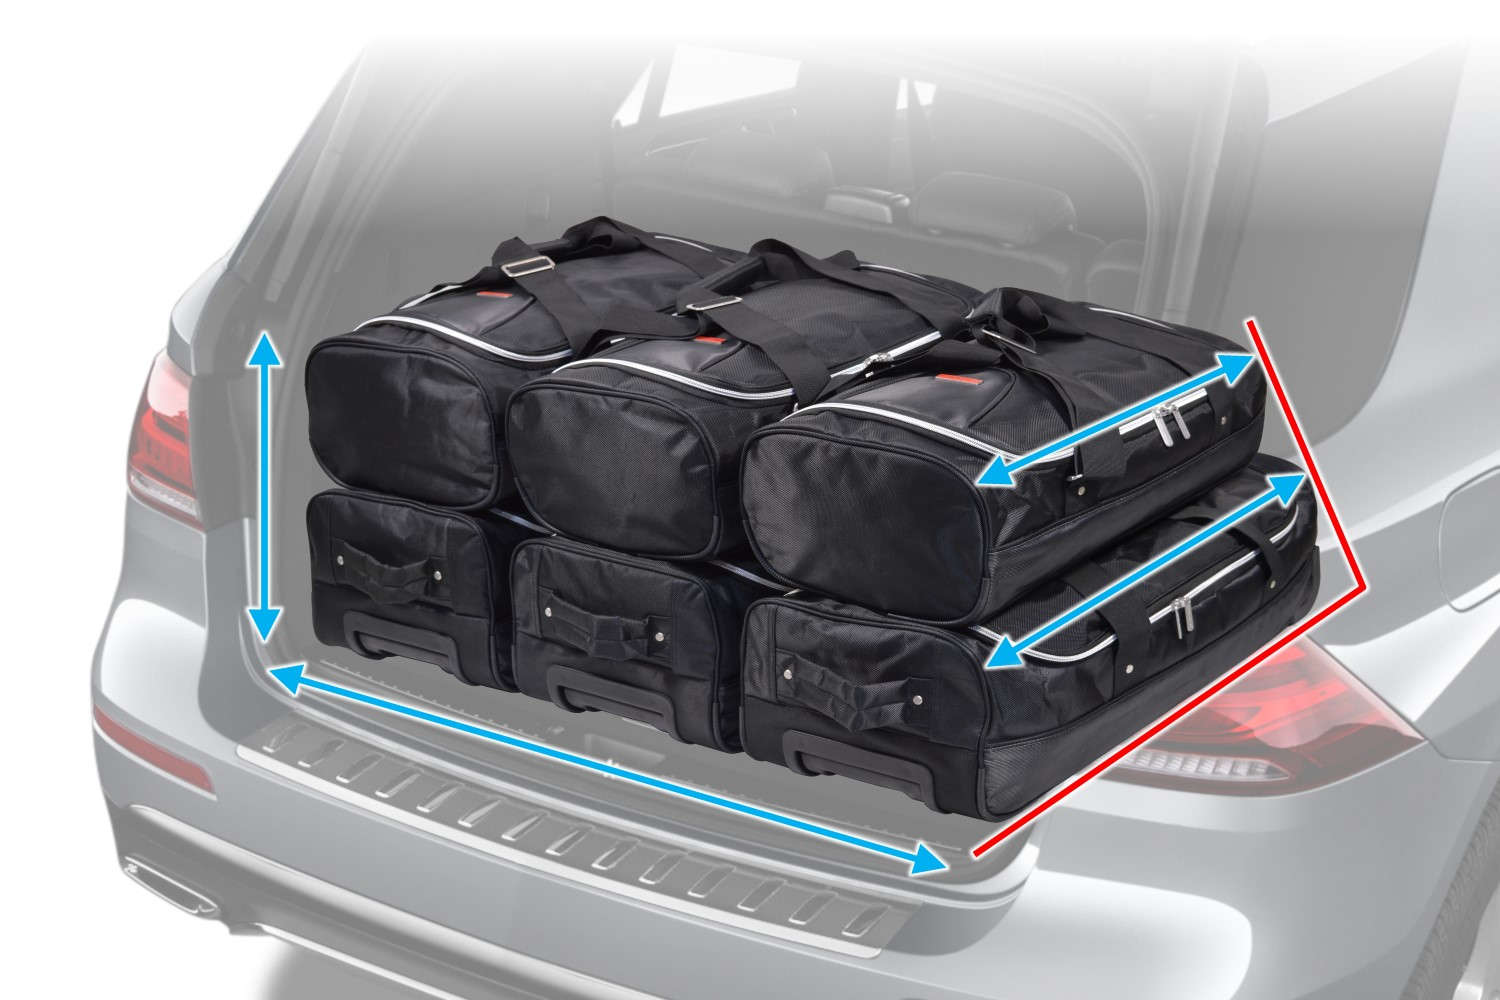 Een Car Bags.com reistassenset past precies in de kofferbak